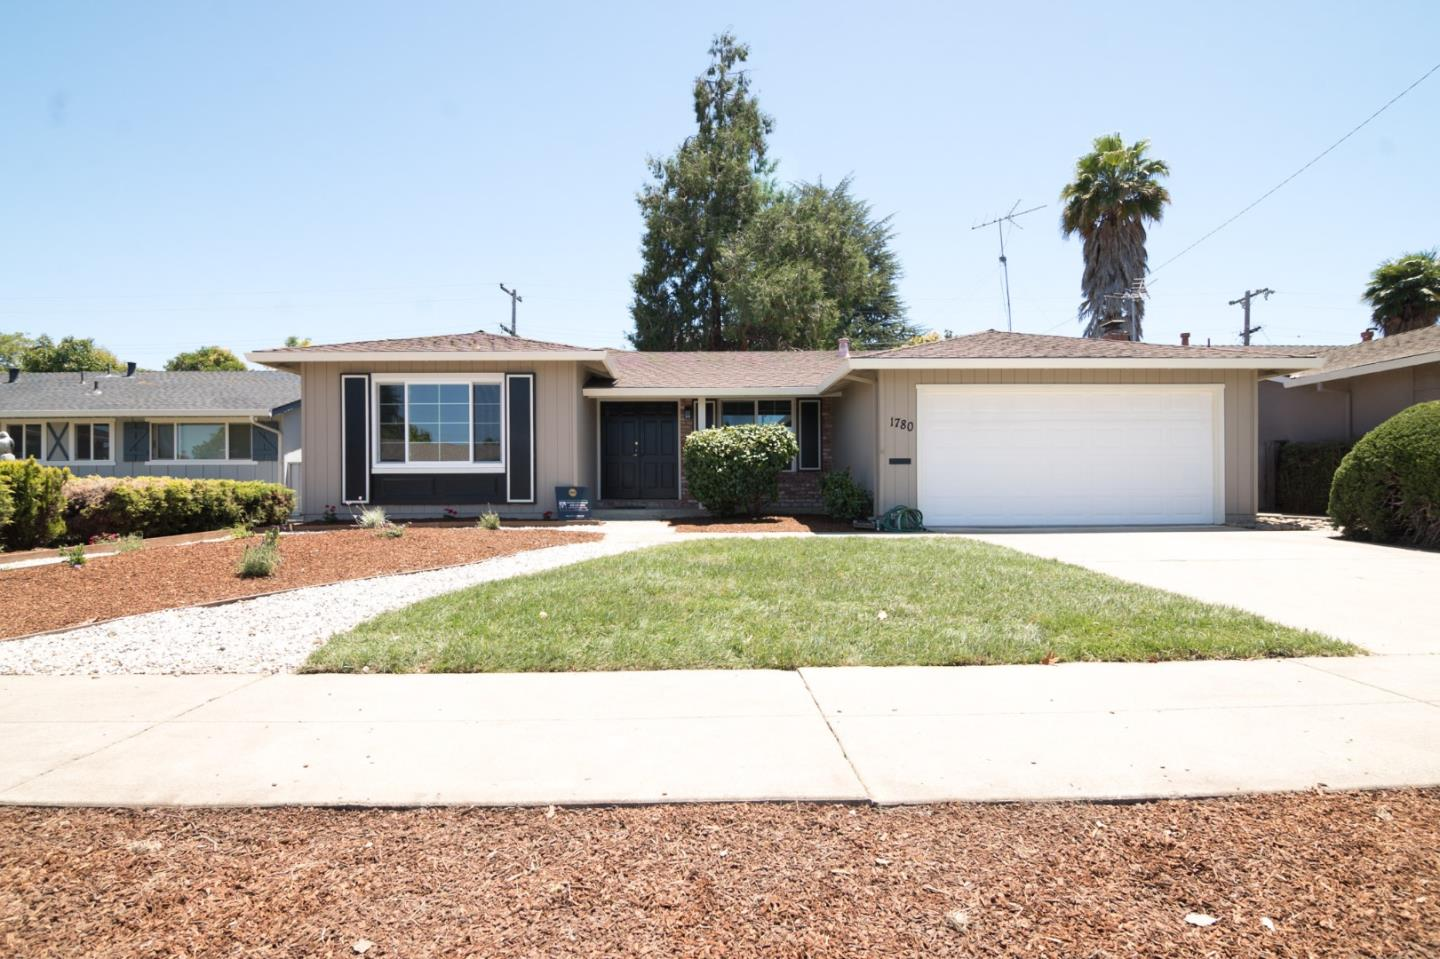 Additional photo for property listing at 1780 Castro Drive  San Jose, Калифорния 95130 Соединенные Штаты